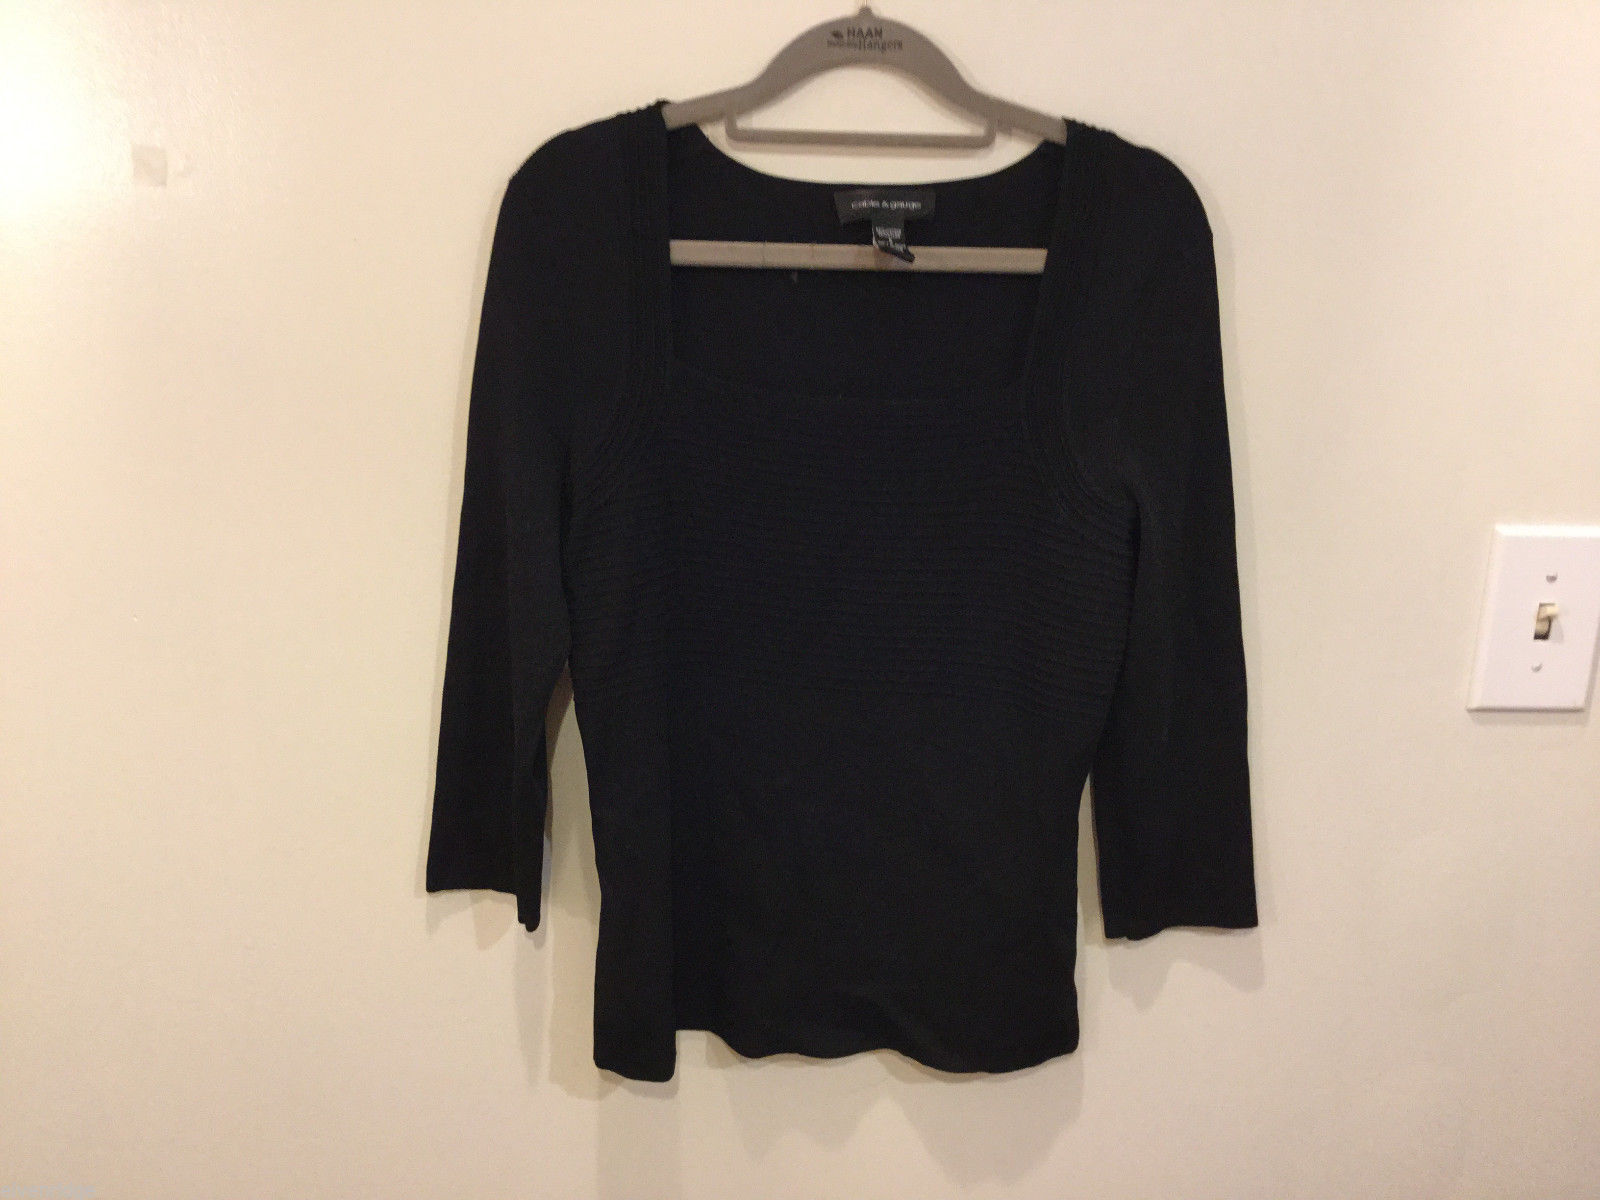 Cable & Gauge 3/4 sleeve Simple and Elegant Black Stretchy Blouse, Size S